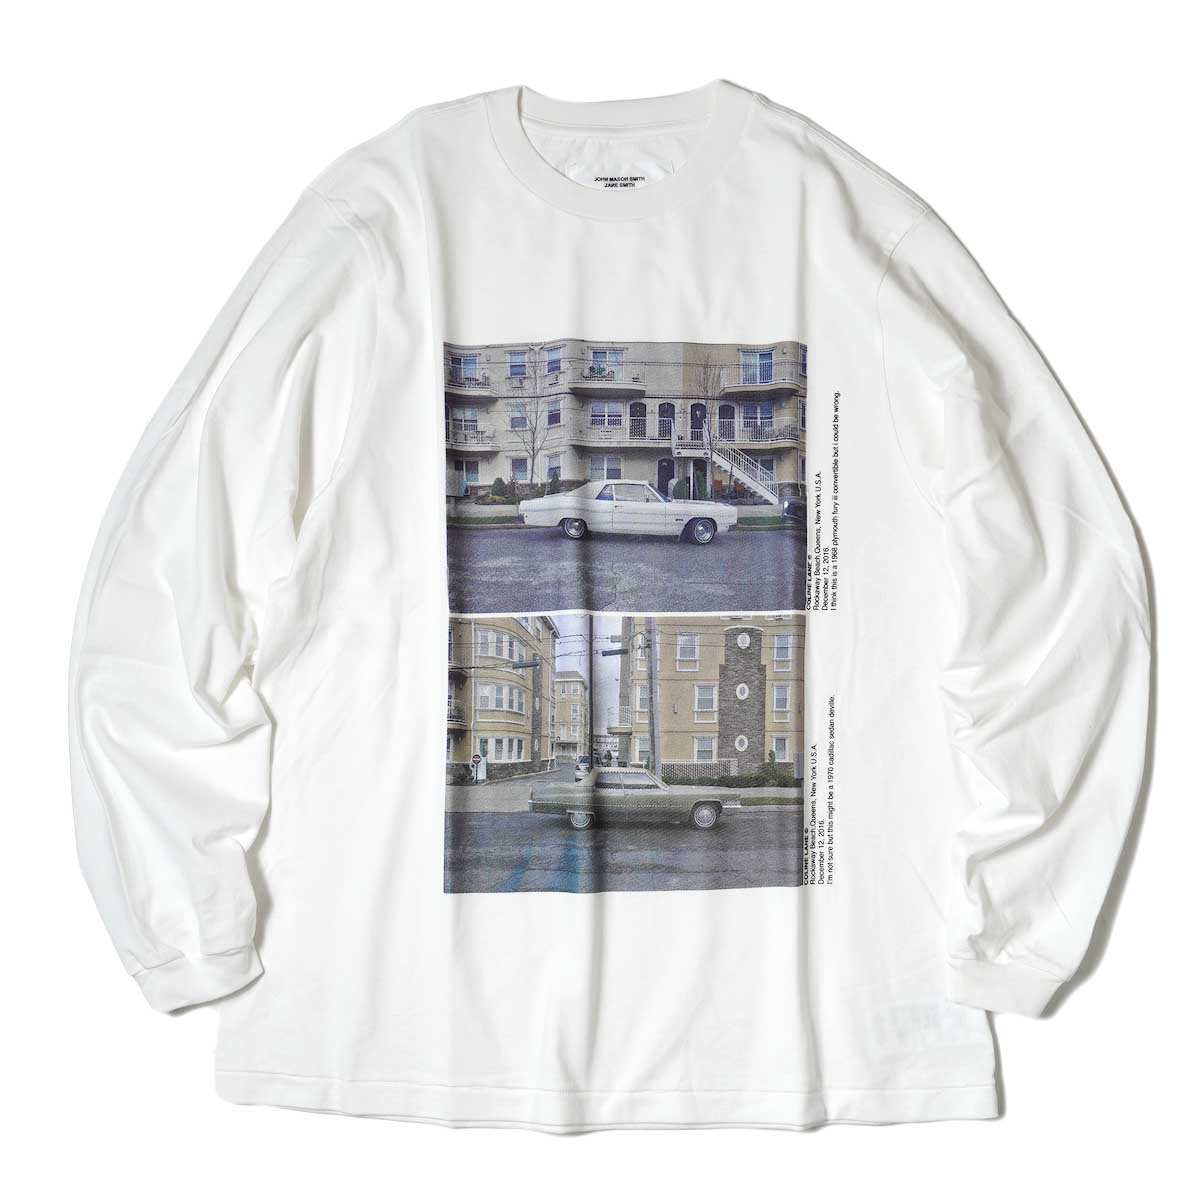 JANE SMITH / CADILLAC PLYMOUTH L/S T-Shirt (White)